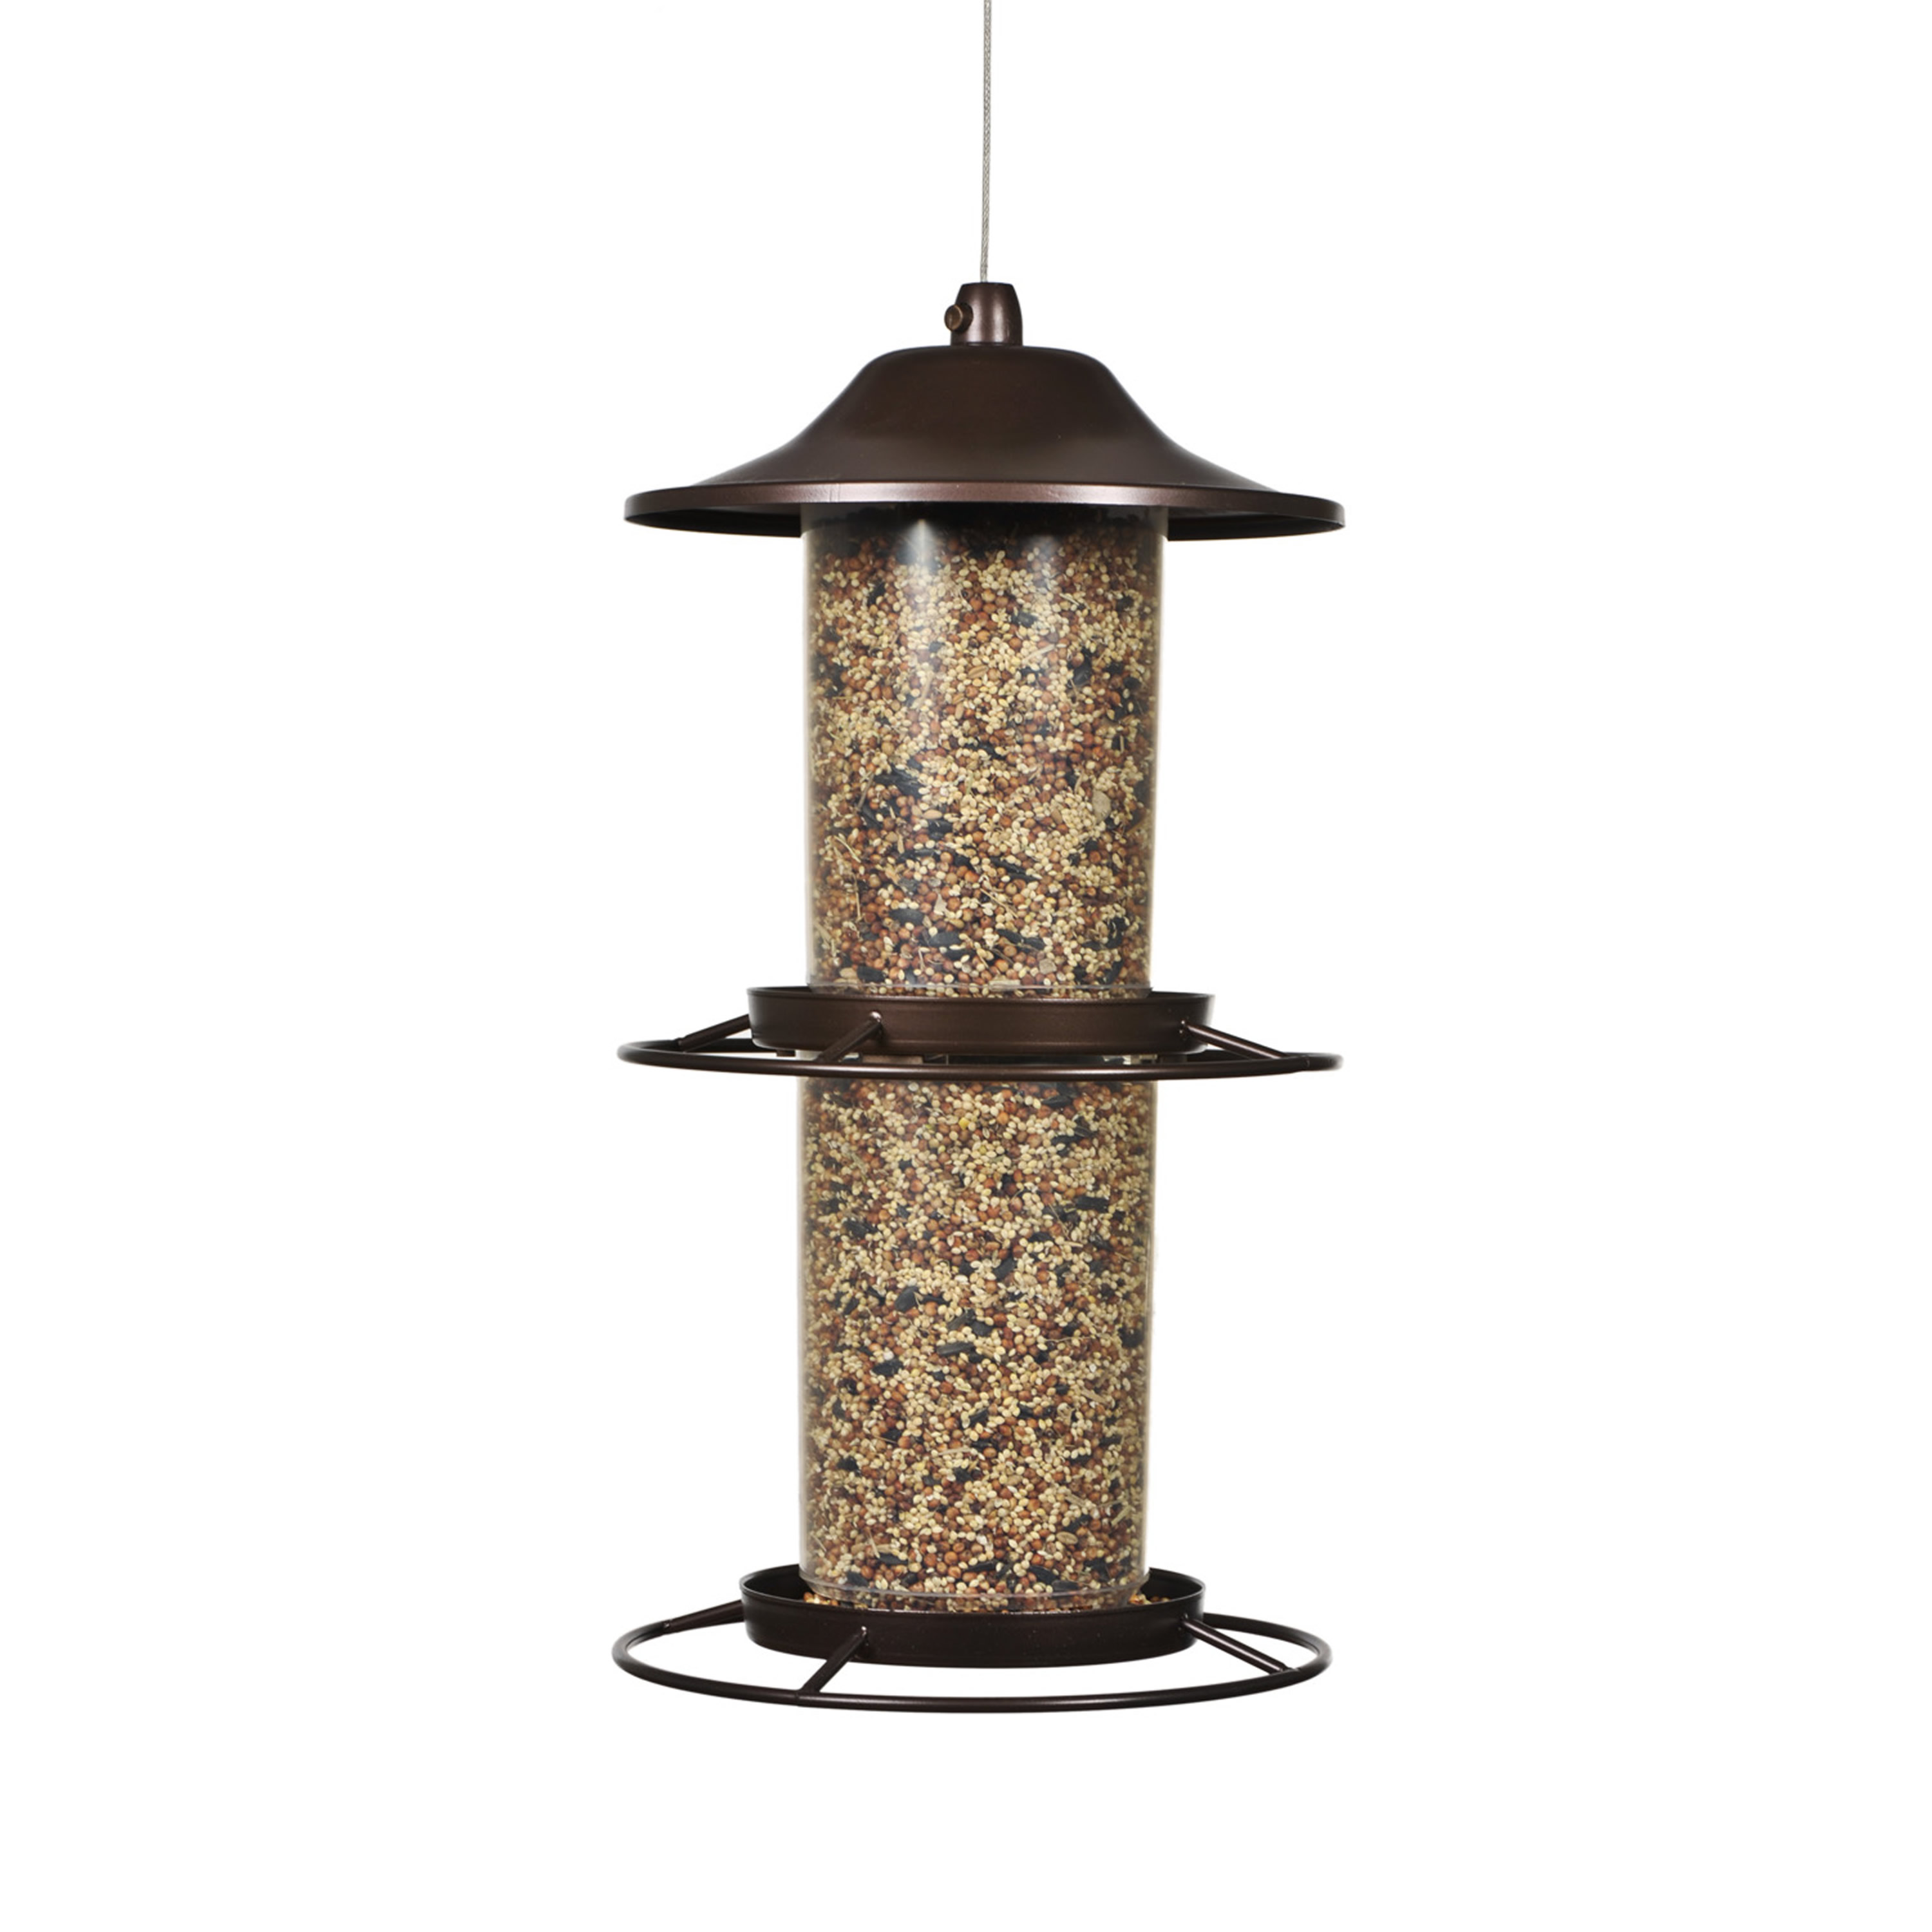 Perky-Pet Panorama Wild Bird Feeder